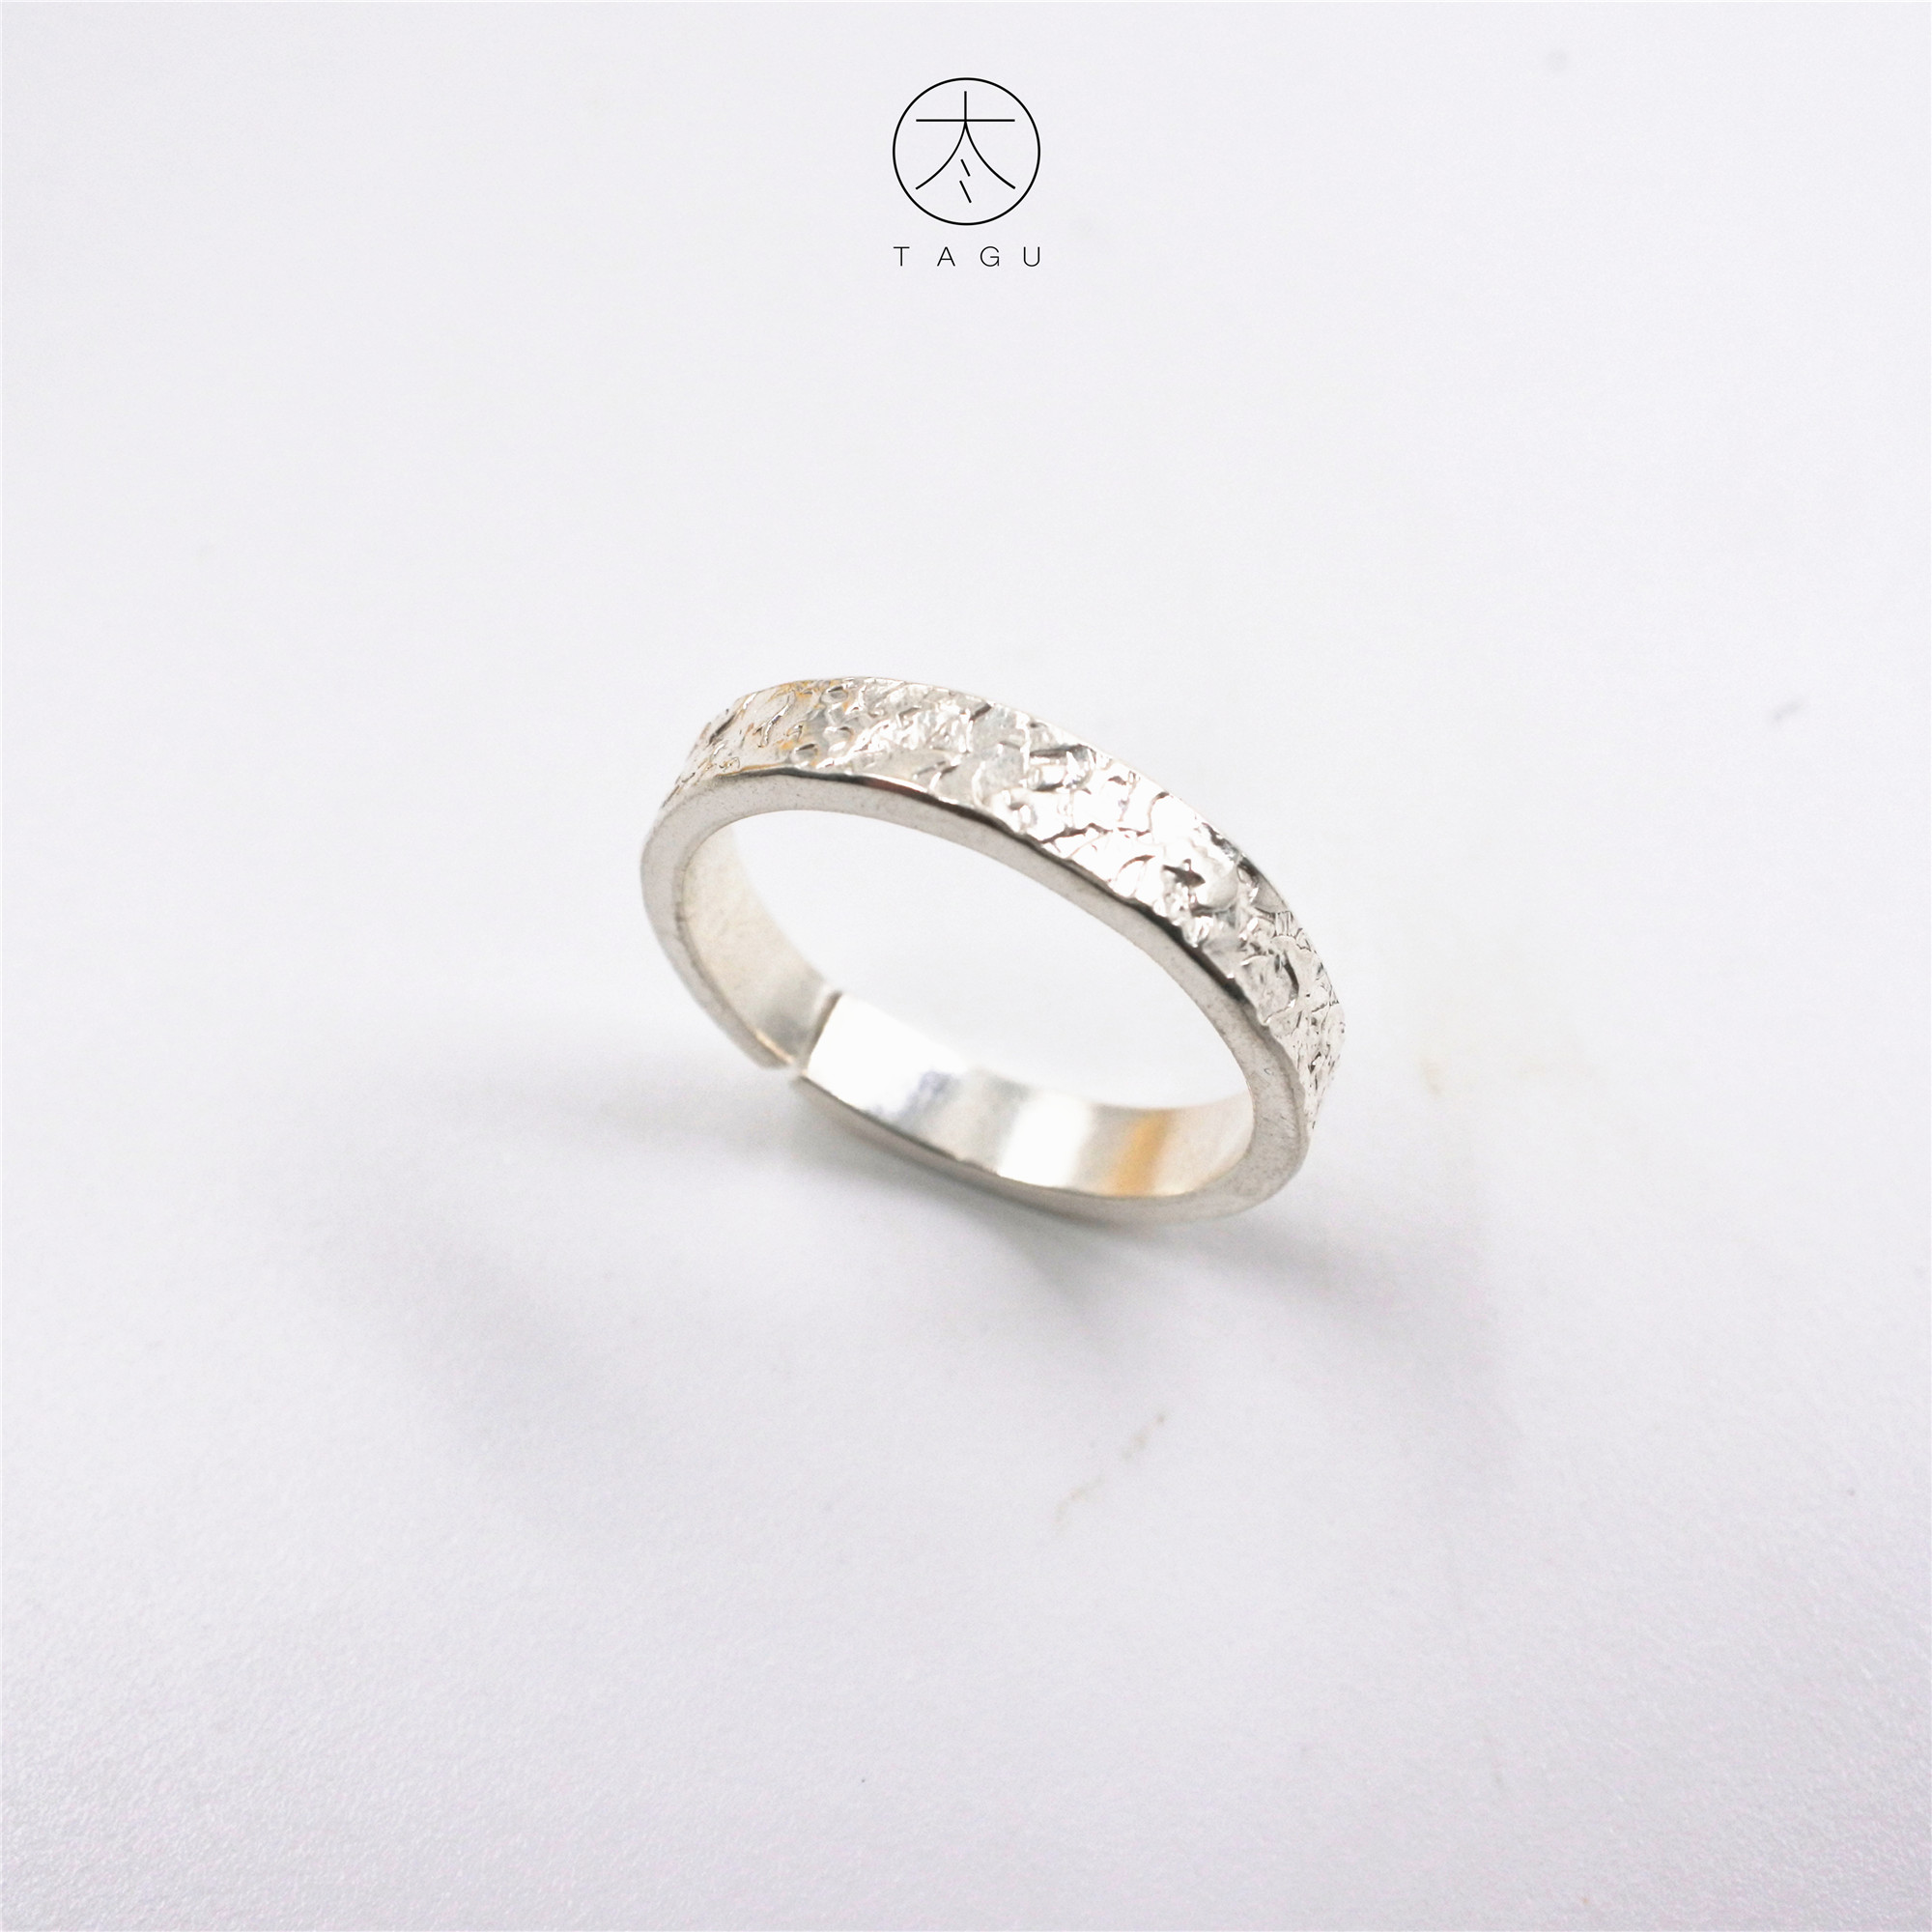 Jinggu independent silver design brand Dali pure hand creative silver summer solstice ring s950 S925